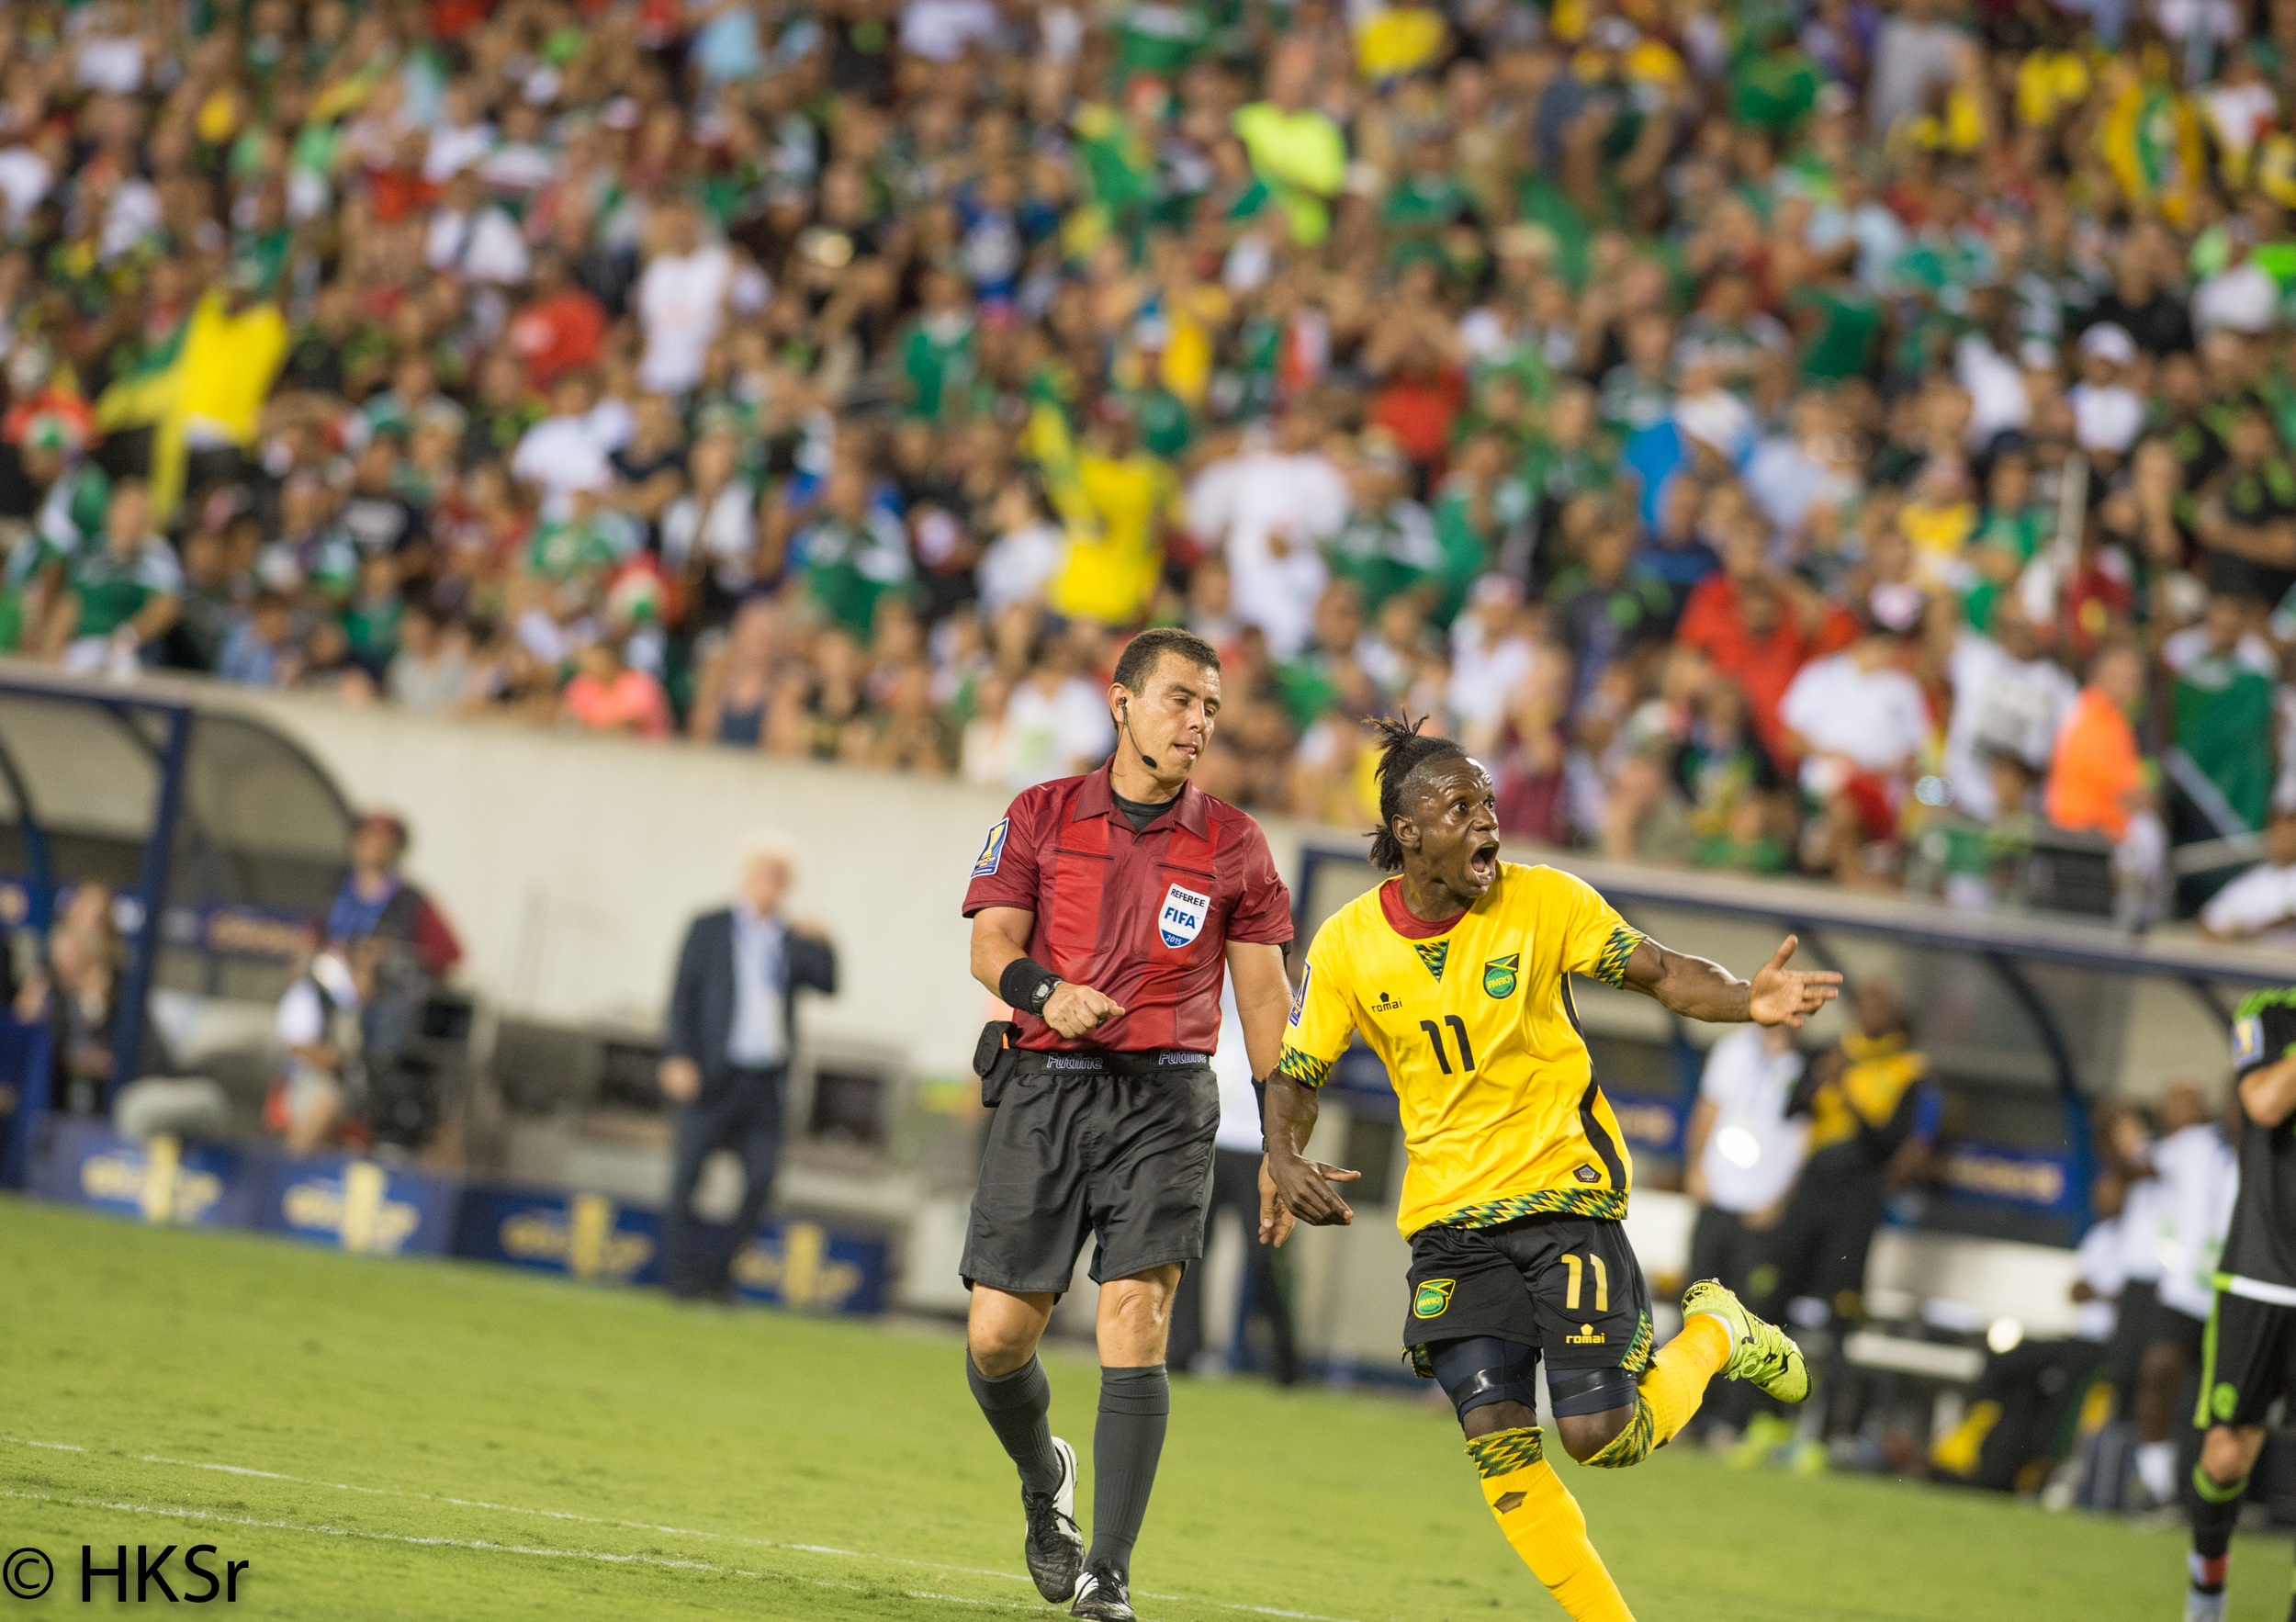 2nd half late goal by Jamaica player #11 Darren Mattocks